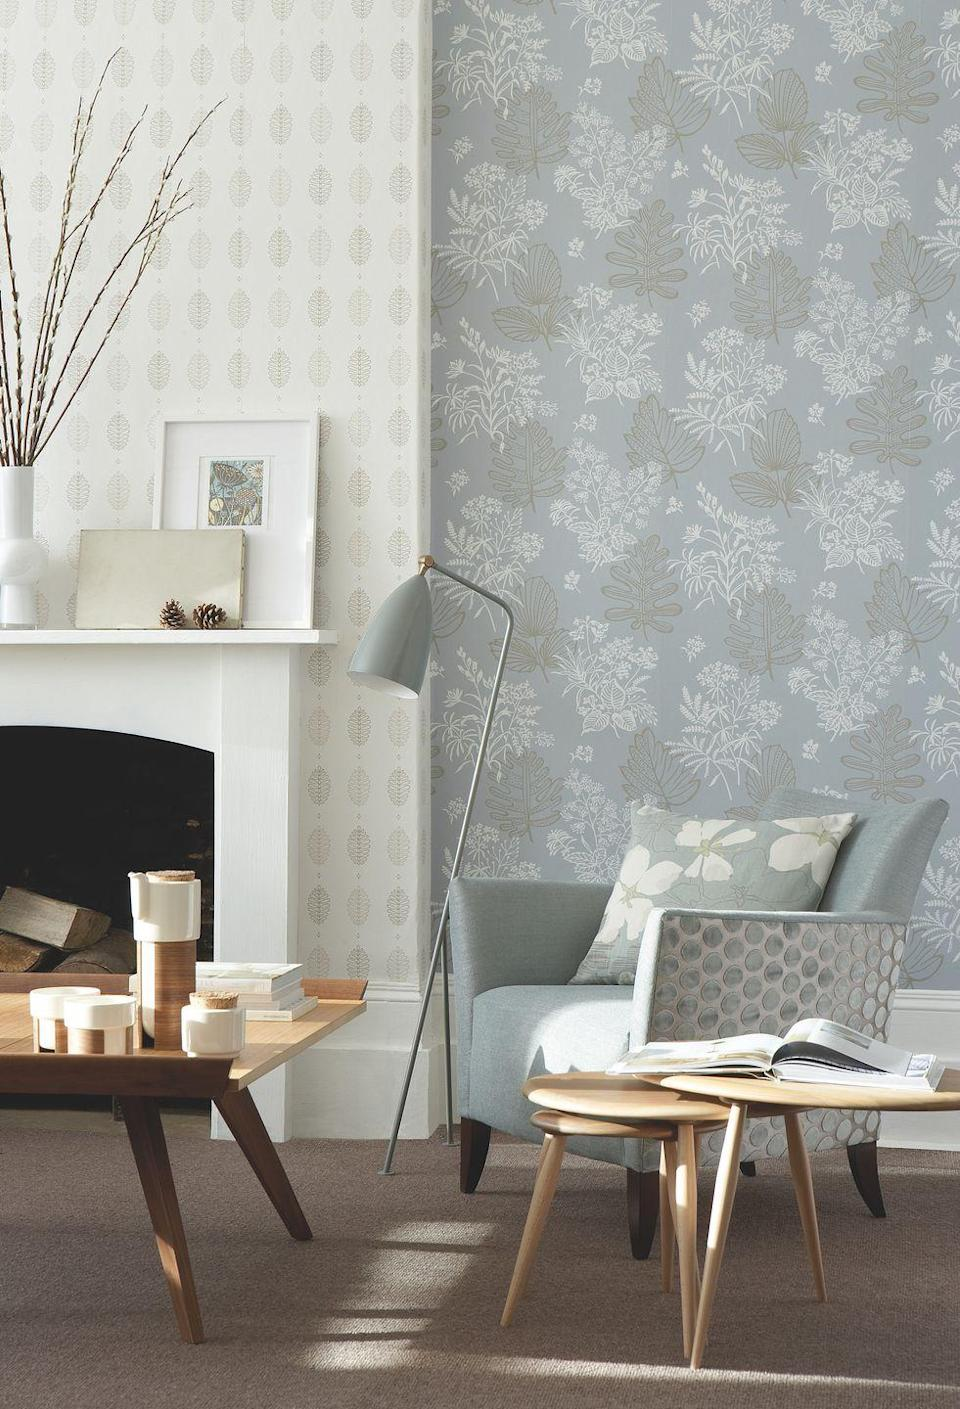 """<p>For an interesting living room wallpaper idea, choose your colour palette then use different patterned wallpapers in different areas. Choose one for the walls and a different one for the chimney breast. It will define the areas in a complementary way. Then follow the theme on the <a href=""""https://www.housebeautiful.com/uk/decorate/g32597929/best-velvet-armchair/"""" rel=""""nofollow noopener"""" target=""""_blank"""" data-ylk=""""slk:armchair"""" class=""""link rapid-noclick-resp"""">armchair</a> with different fabrics on the body of the chair and the sides.</p><p>Pictured: Alcove walls: Norcombe in Welkin; Chimney Breast: Cones in Lint; Skirting and fireplace painted in Shirting no. 129, all <a href=""""https://www.littlegreene.com/"""" rel=""""nofollow noopener"""" target=""""_blank"""" data-ylk=""""slk:Little Greene"""" class=""""link rapid-noclick-resp"""">Little Greene</a></p>"""